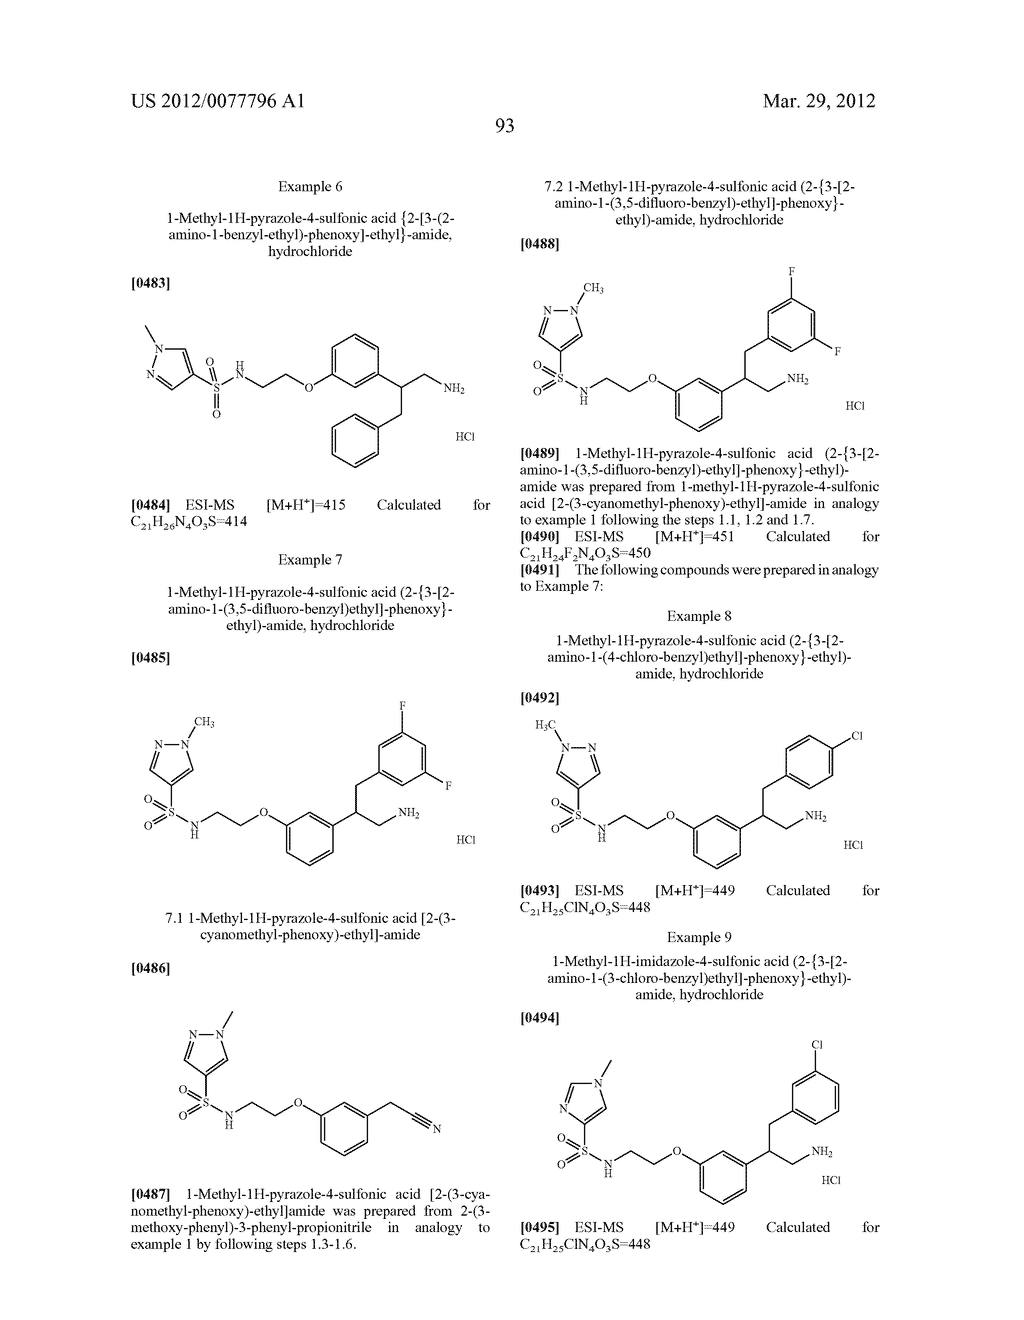 PHENALKYLAMINE DERIVATIVES, PHARMACEUTICAL COMPOSITIONS CONTAINING THEM,     AND THEIR USE IN THERAPY - diagram, schematic, and image 94